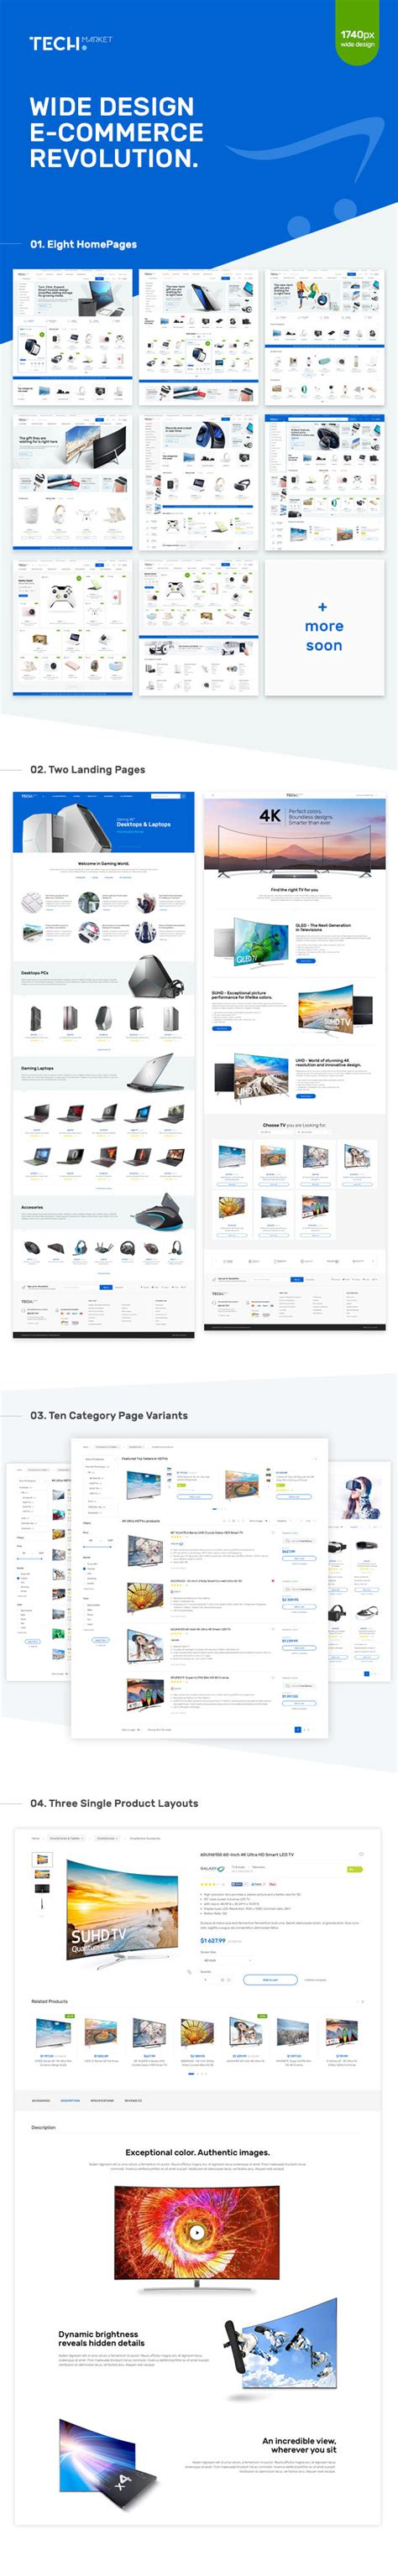 shopify the ultimate shopify user guide simplifying shopify and helping you to make money with your own shopify ecommerce store books techmarket ultimate shopify template by sw themes